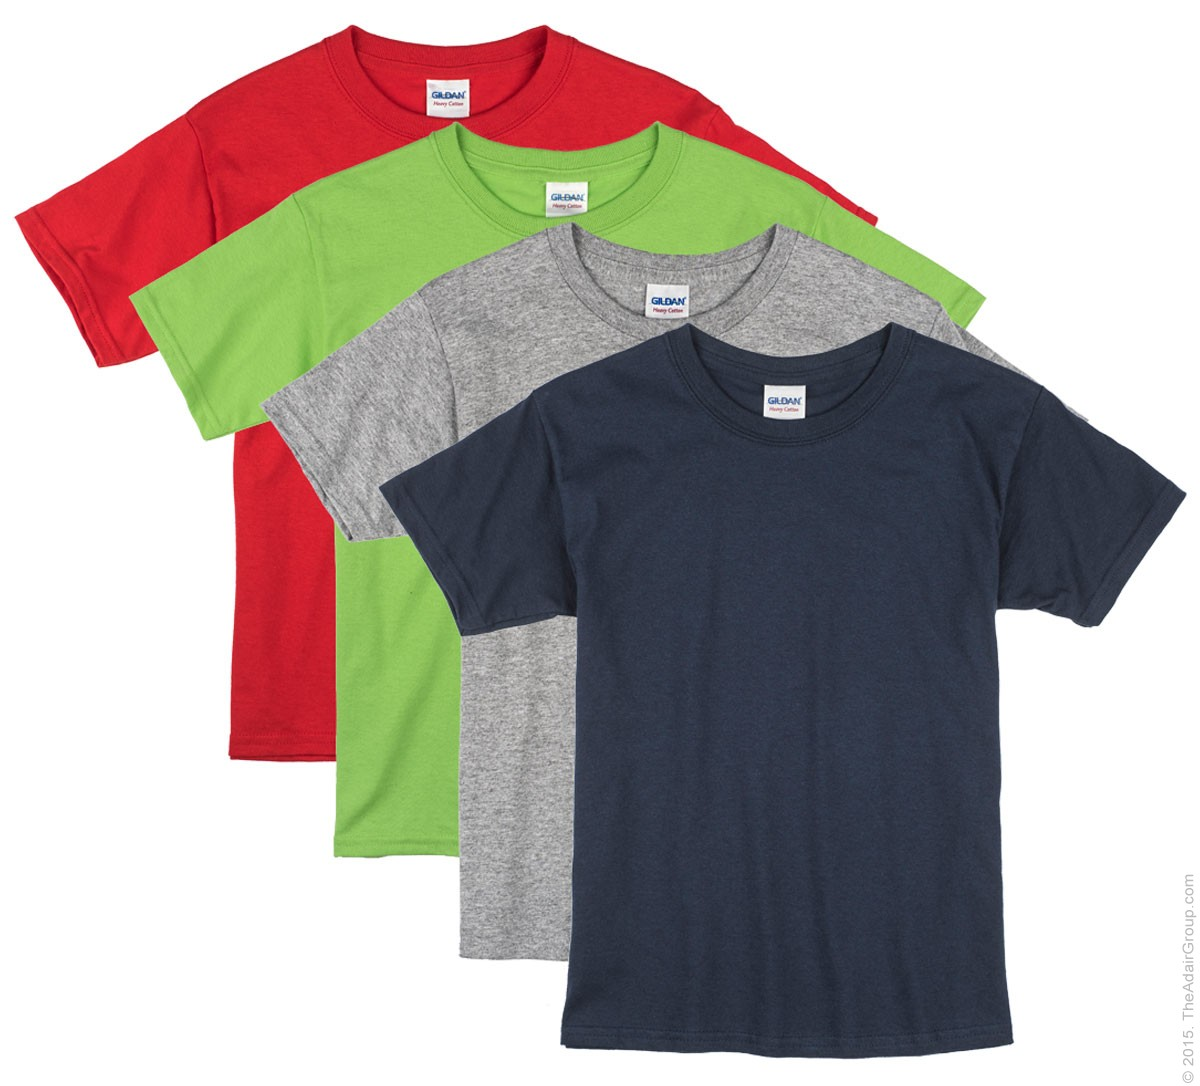 b2ab582e8a7 Assorted Color Kids T-Shirts   The Adair Group